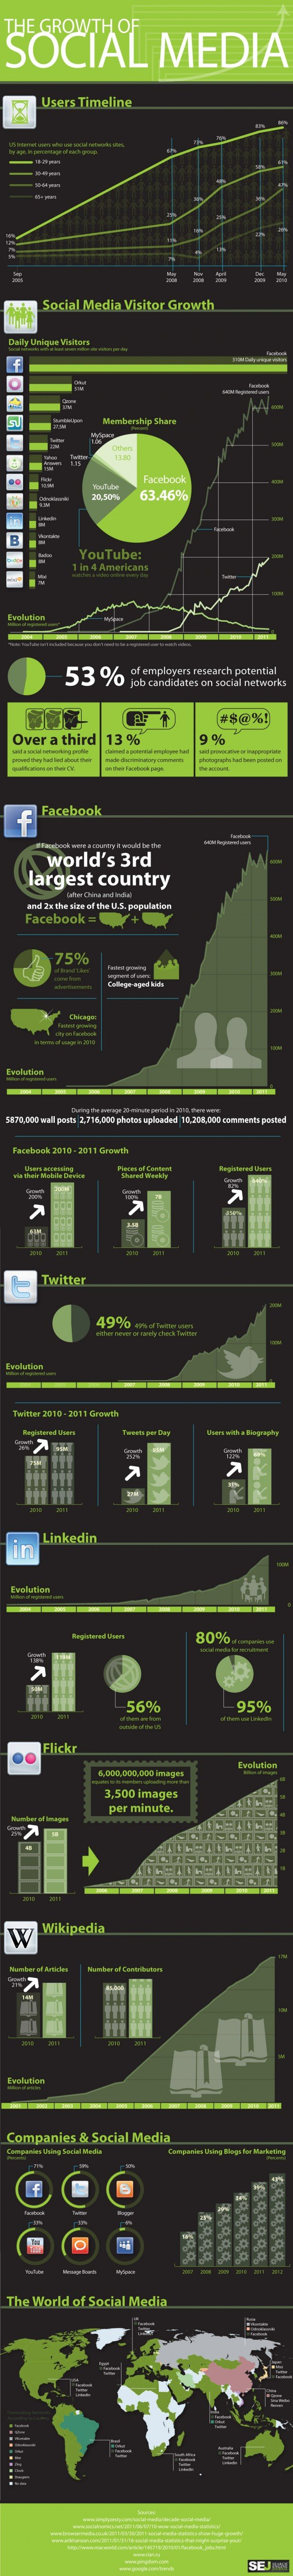 Social Media Boom: What's Next?